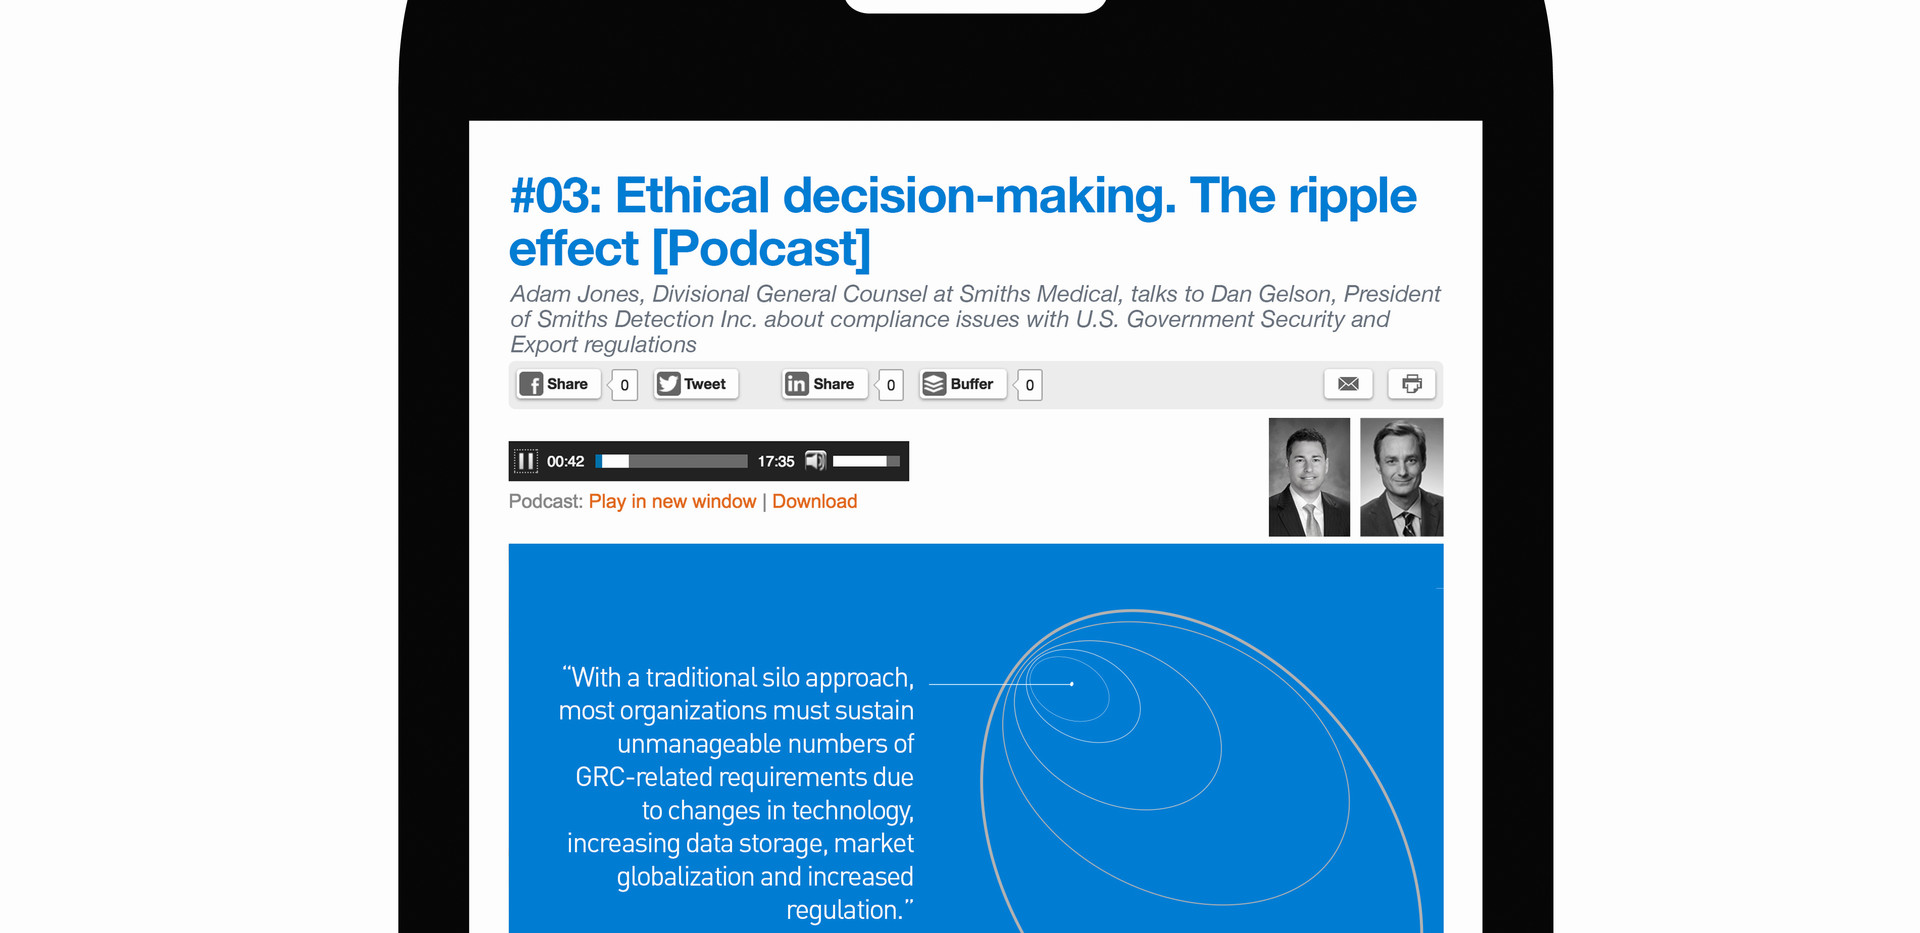 Podcast content for ethics